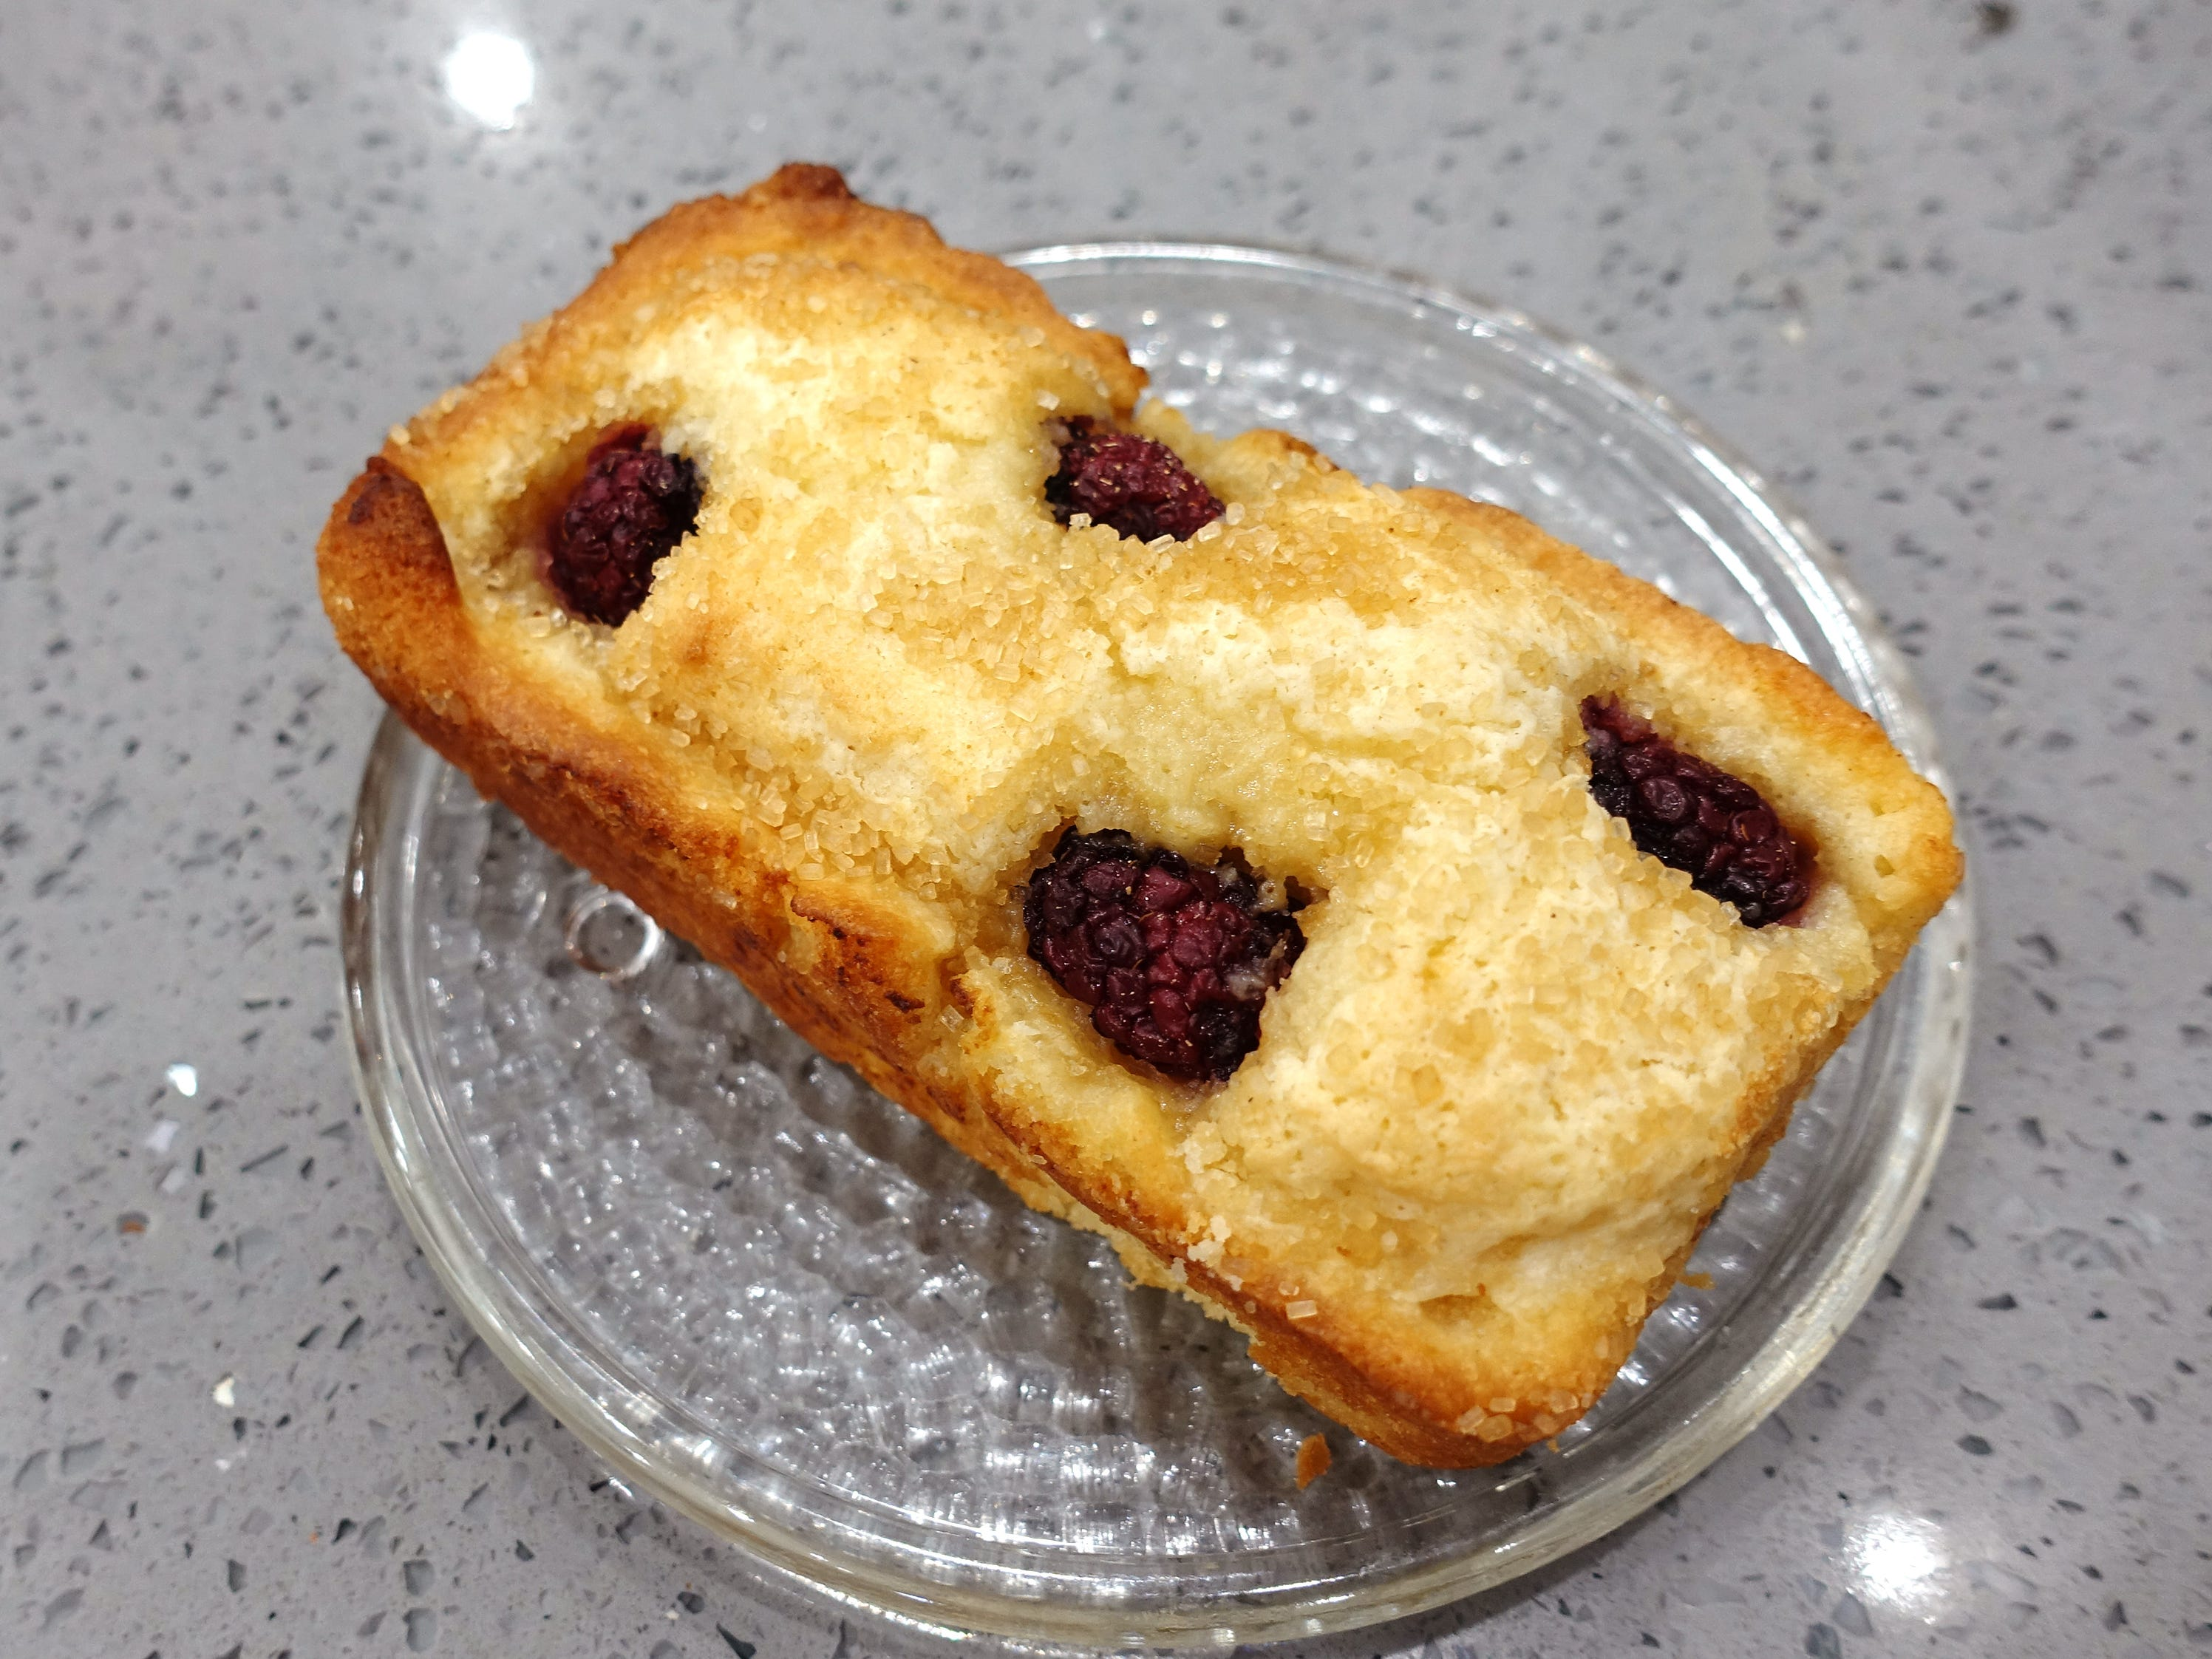 Blackberry butter loaf at Sweetest Season Artisan Eatery in Tempe.